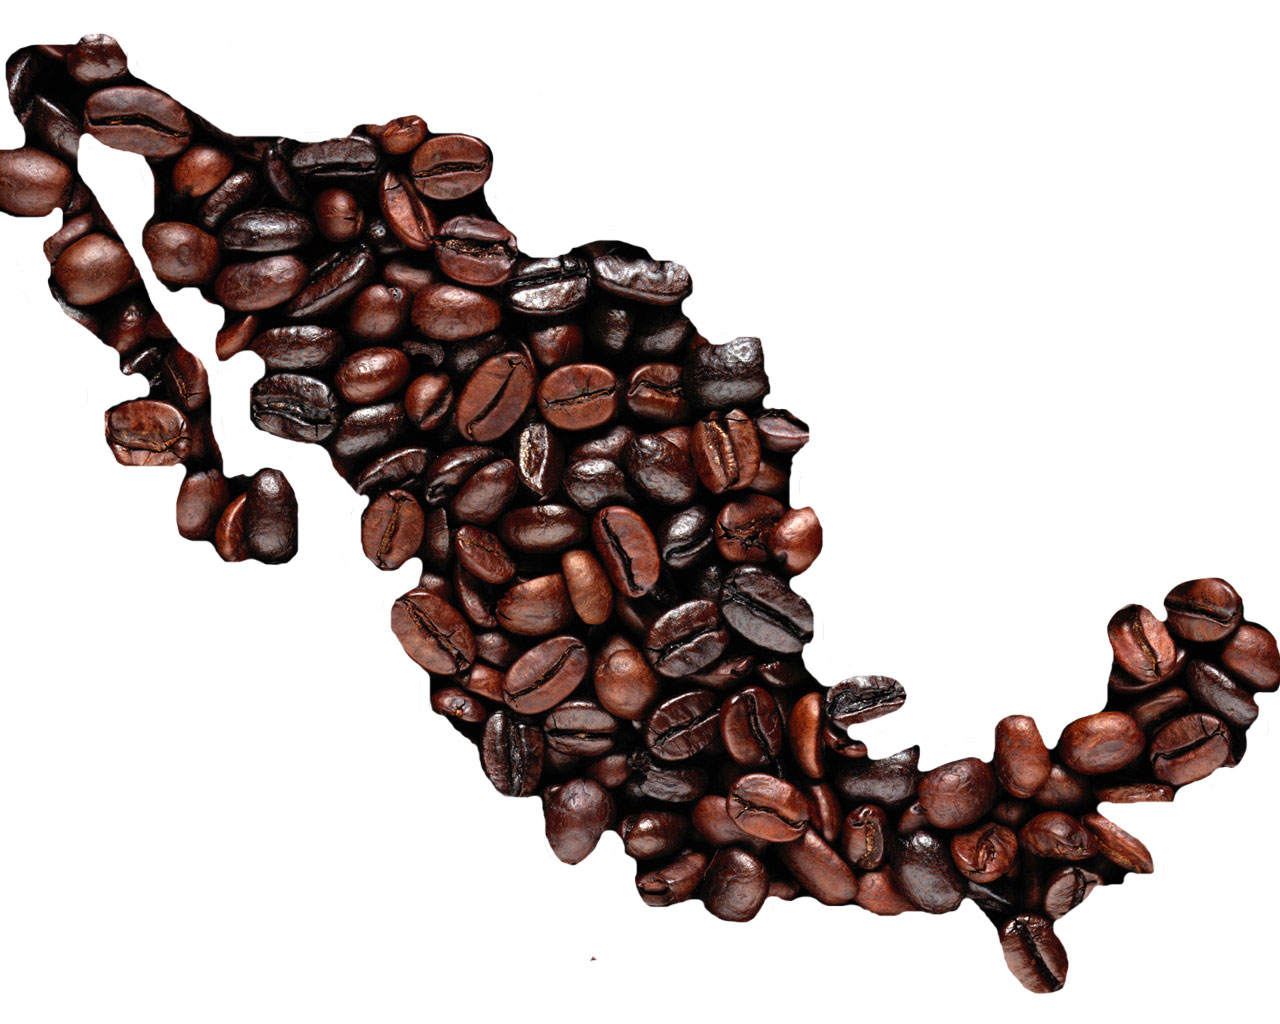 In The   Period Mexico Ranked Th Among The Largest Coffee Producers Worldwide With   Percent Of Global Production And Positioning Itself In